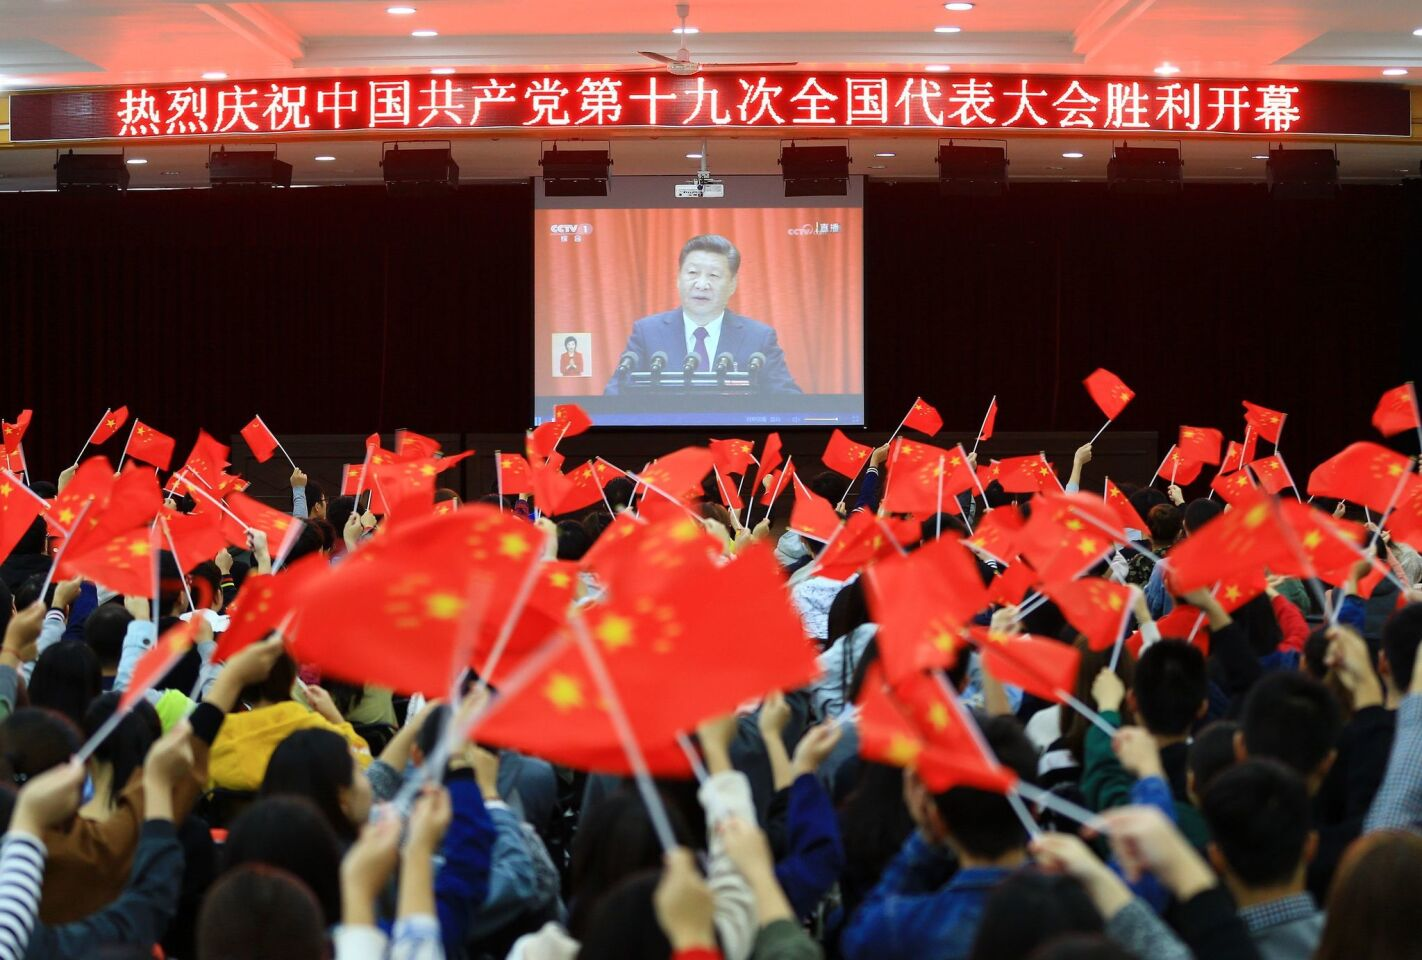 19th Communist Party Congress in China